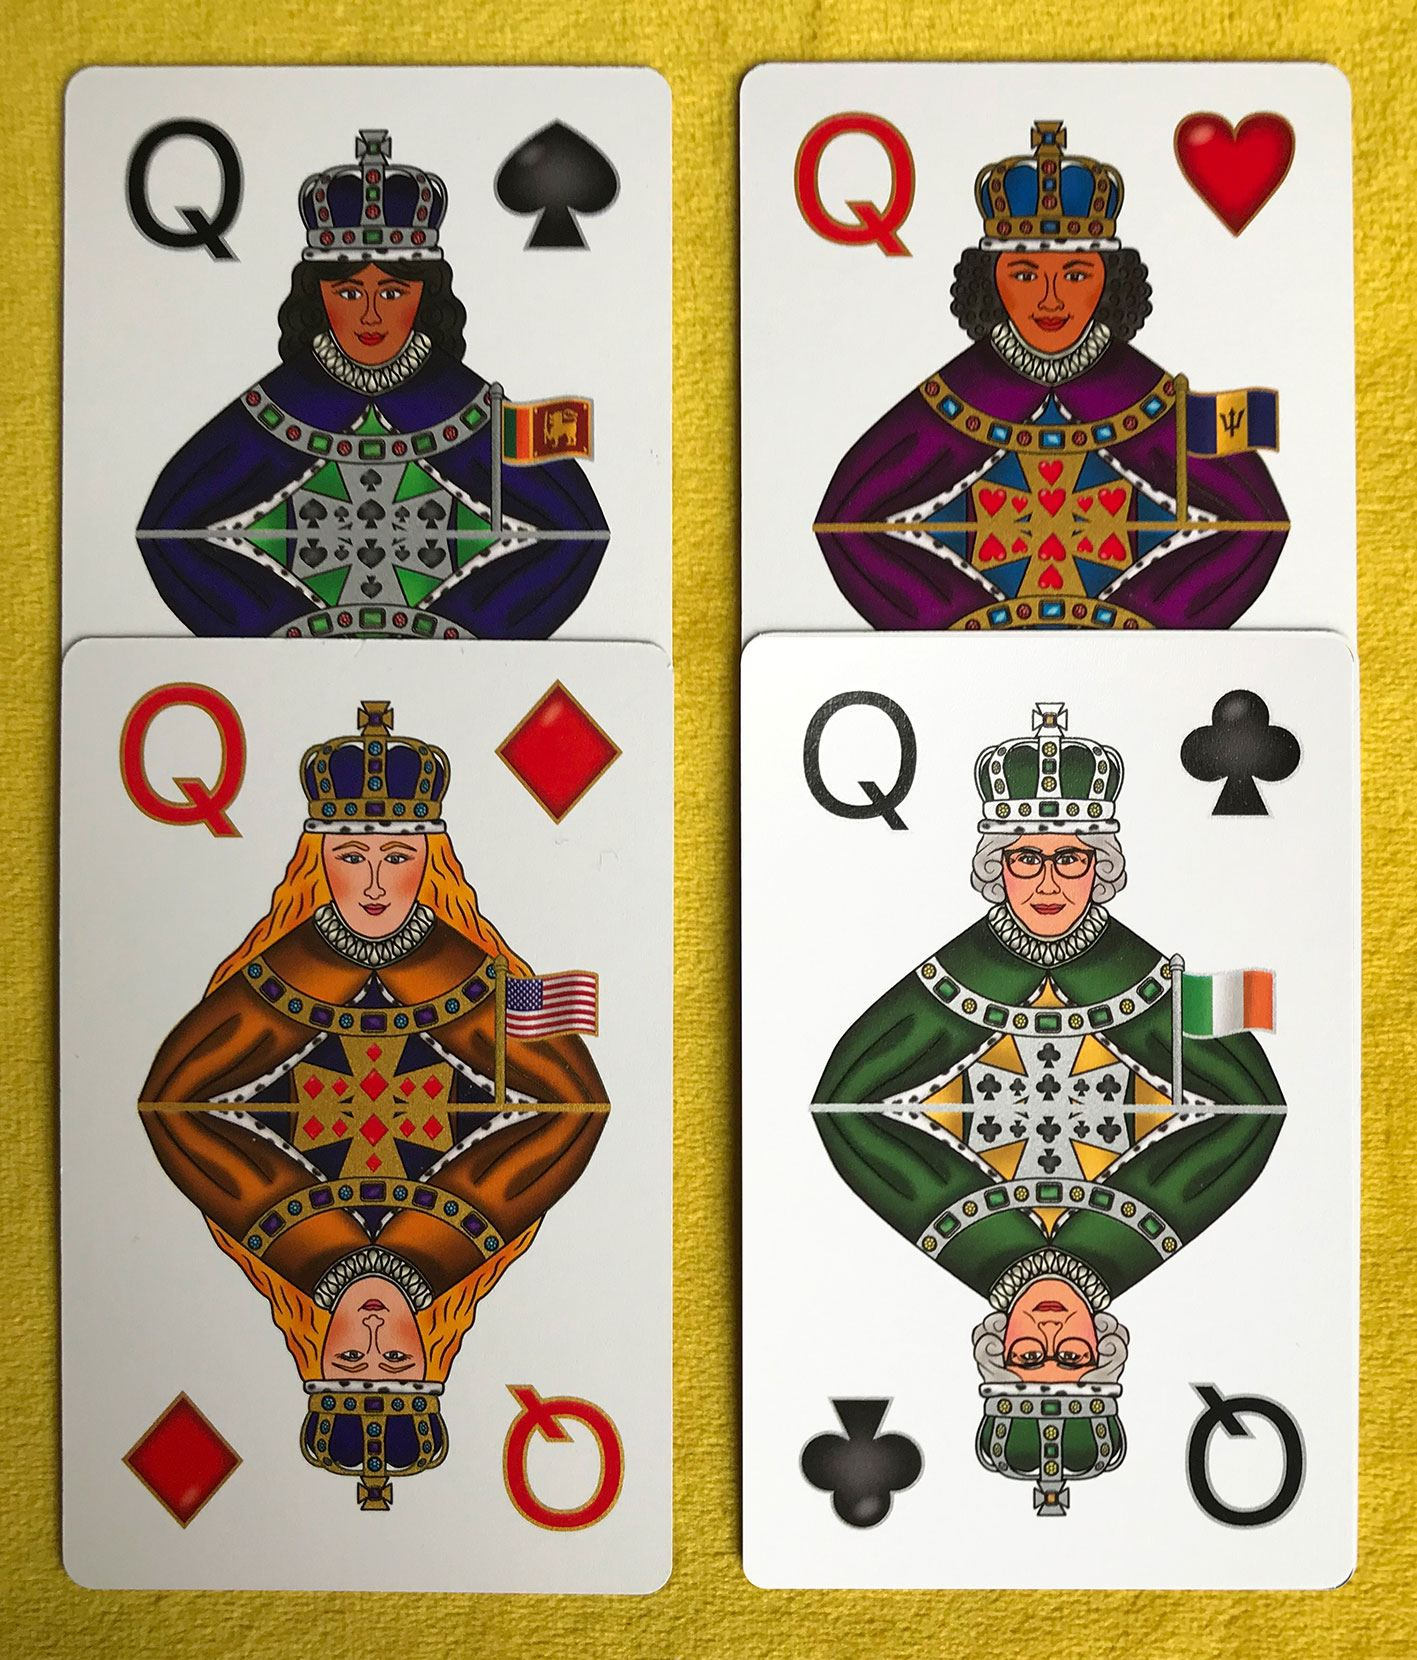 Be Illustrated on a Playing Card – Multicultural Skin Colour Card Deck, Celebrating Diversity Kind Shop 7